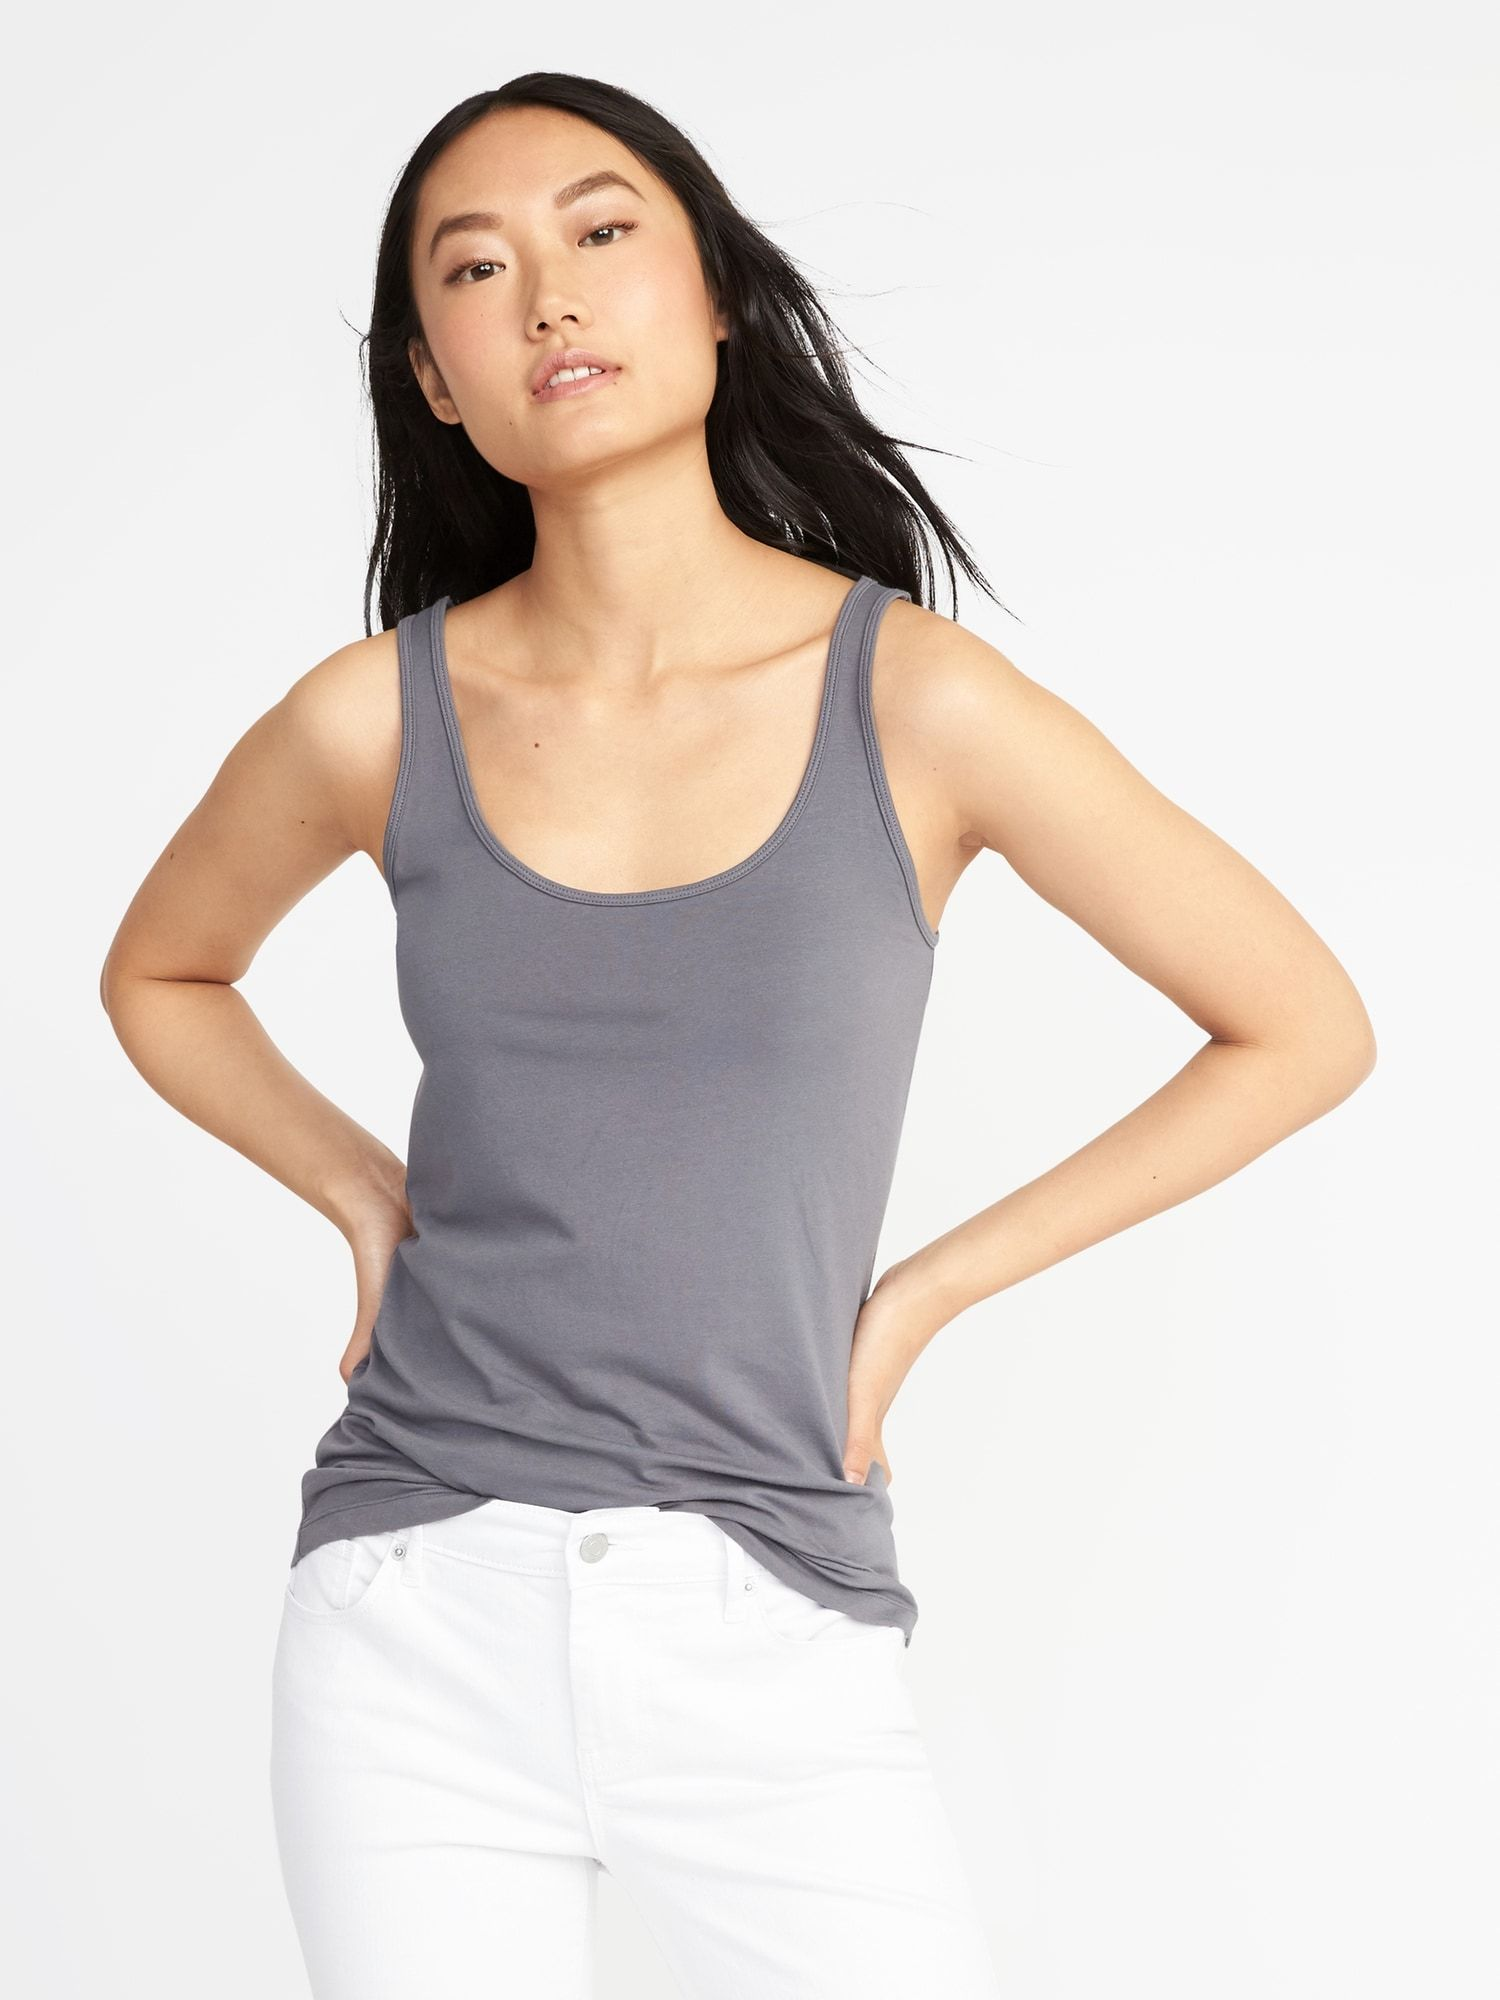 Firstlayer fitted tank for women layering tank tops